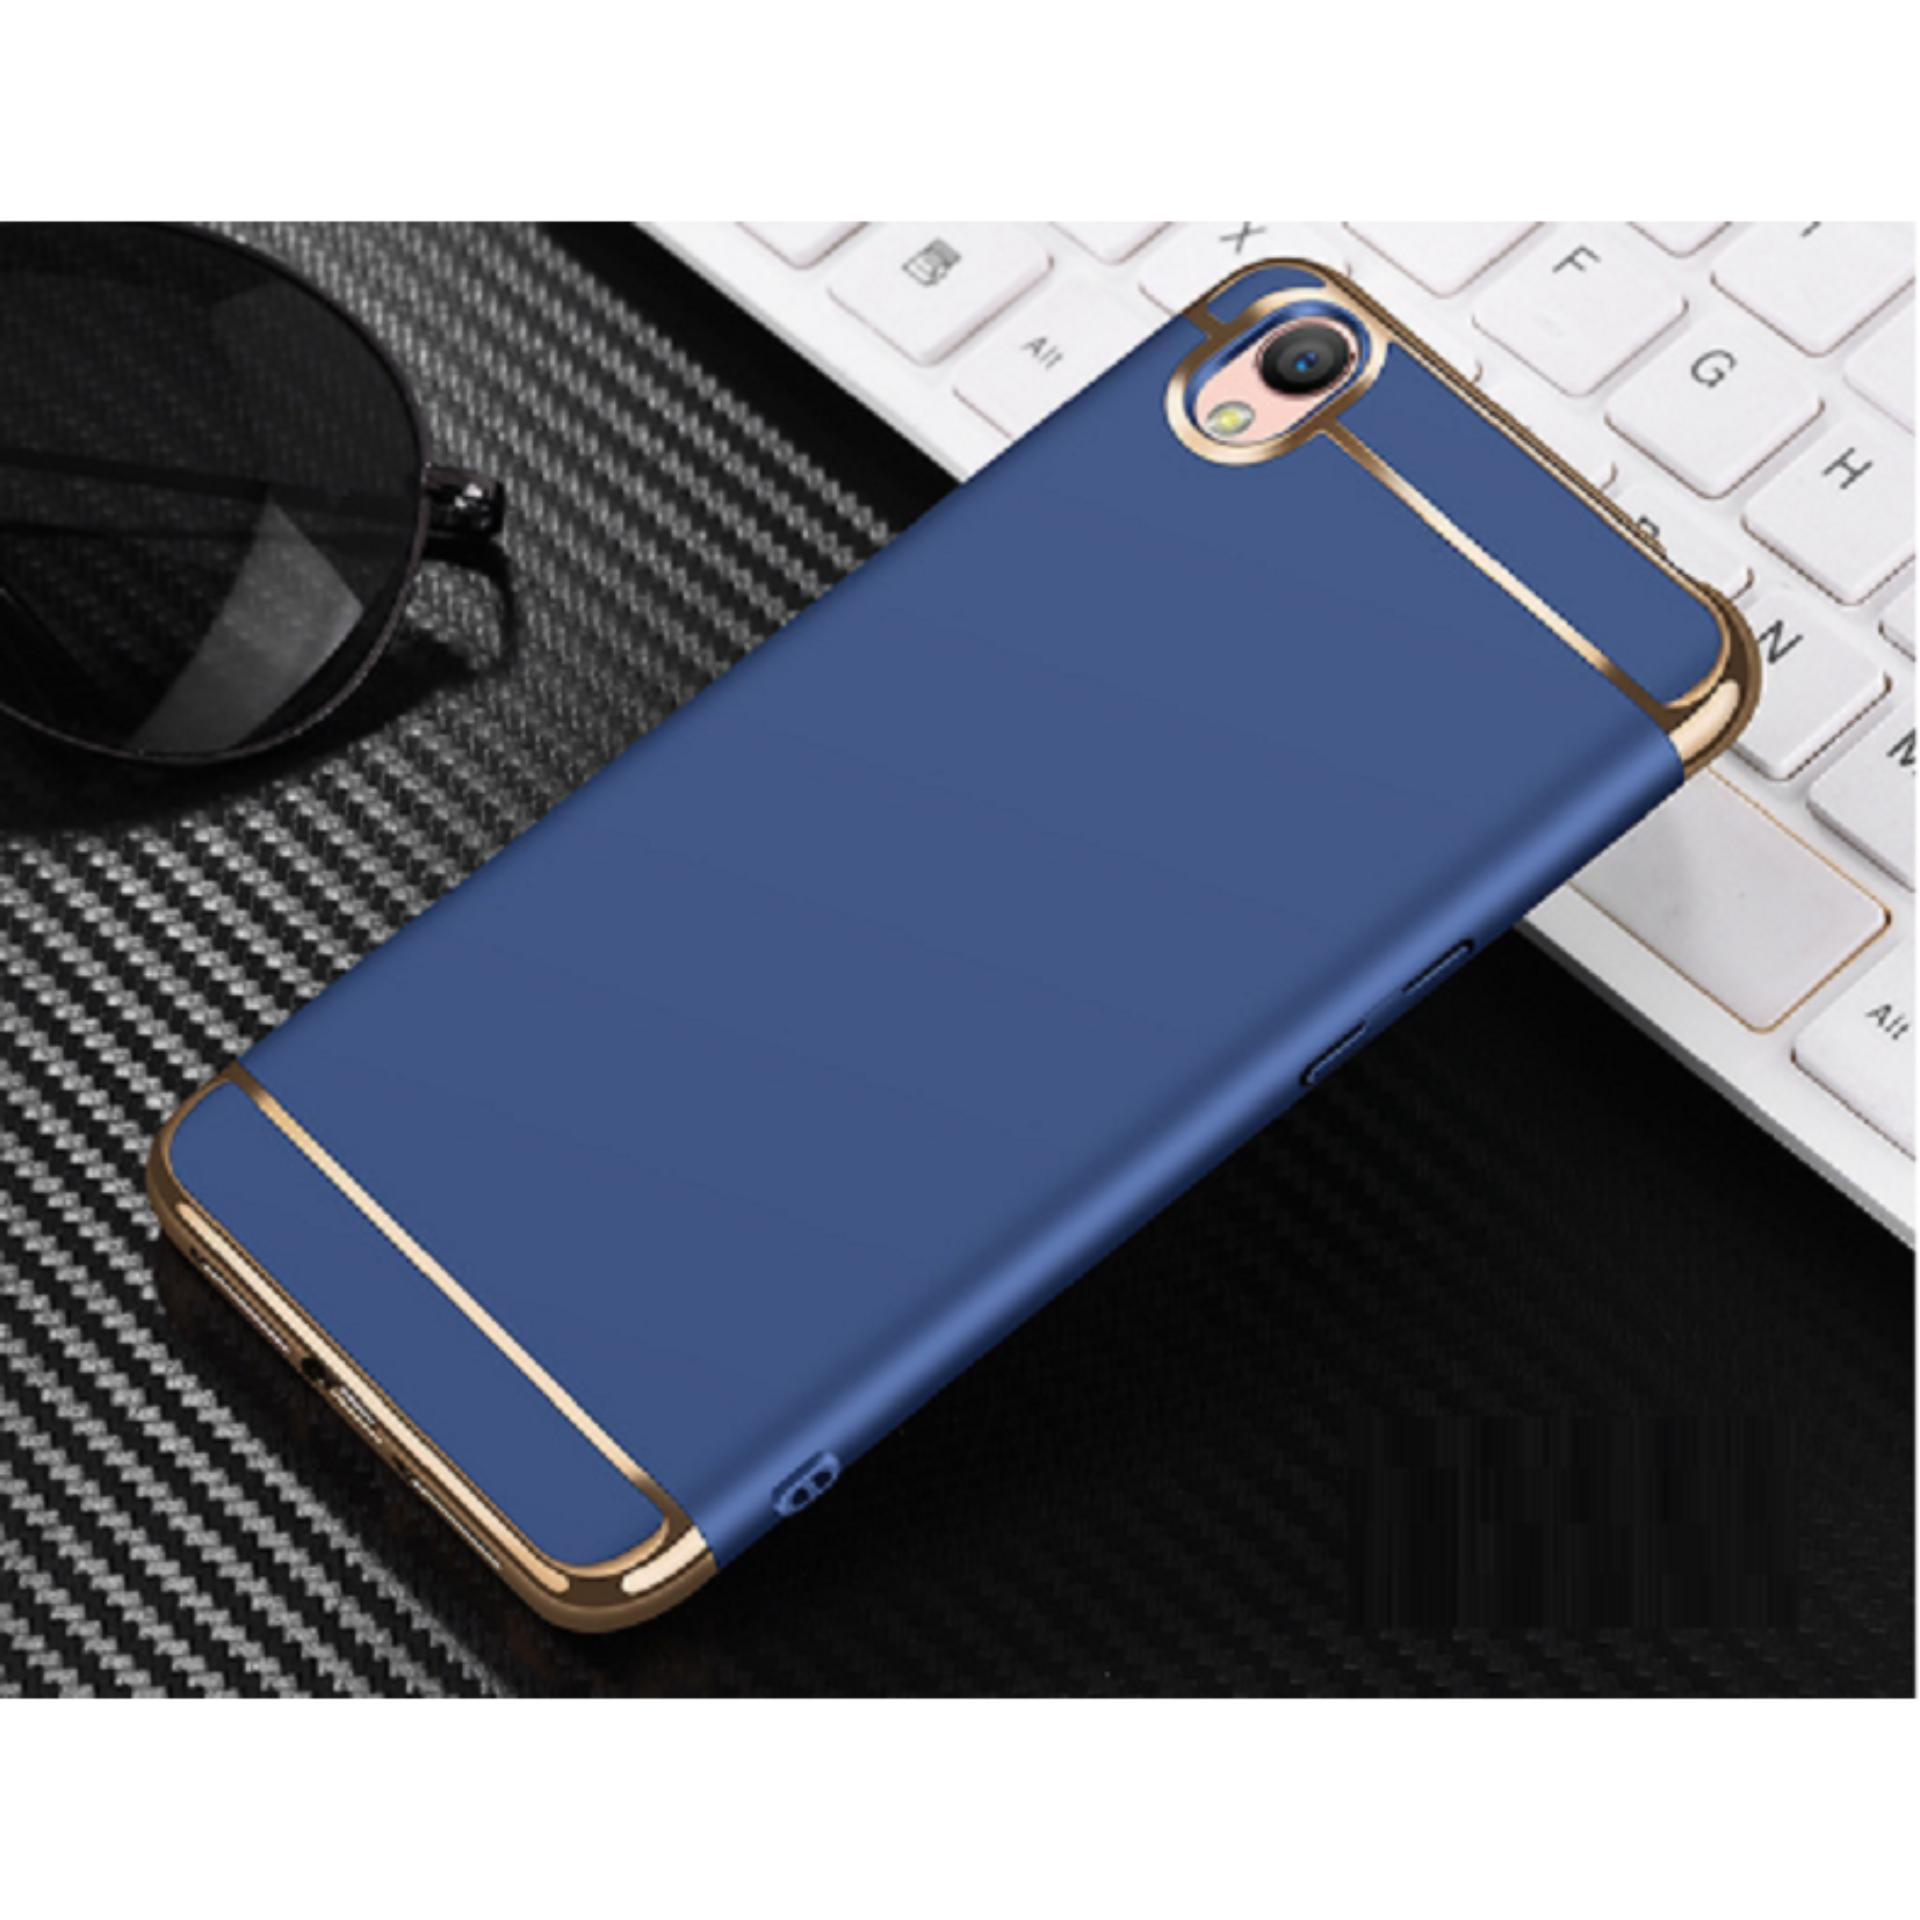 Pc Back Case Cover Golden Intl. 850 x 995. Lm Sao .